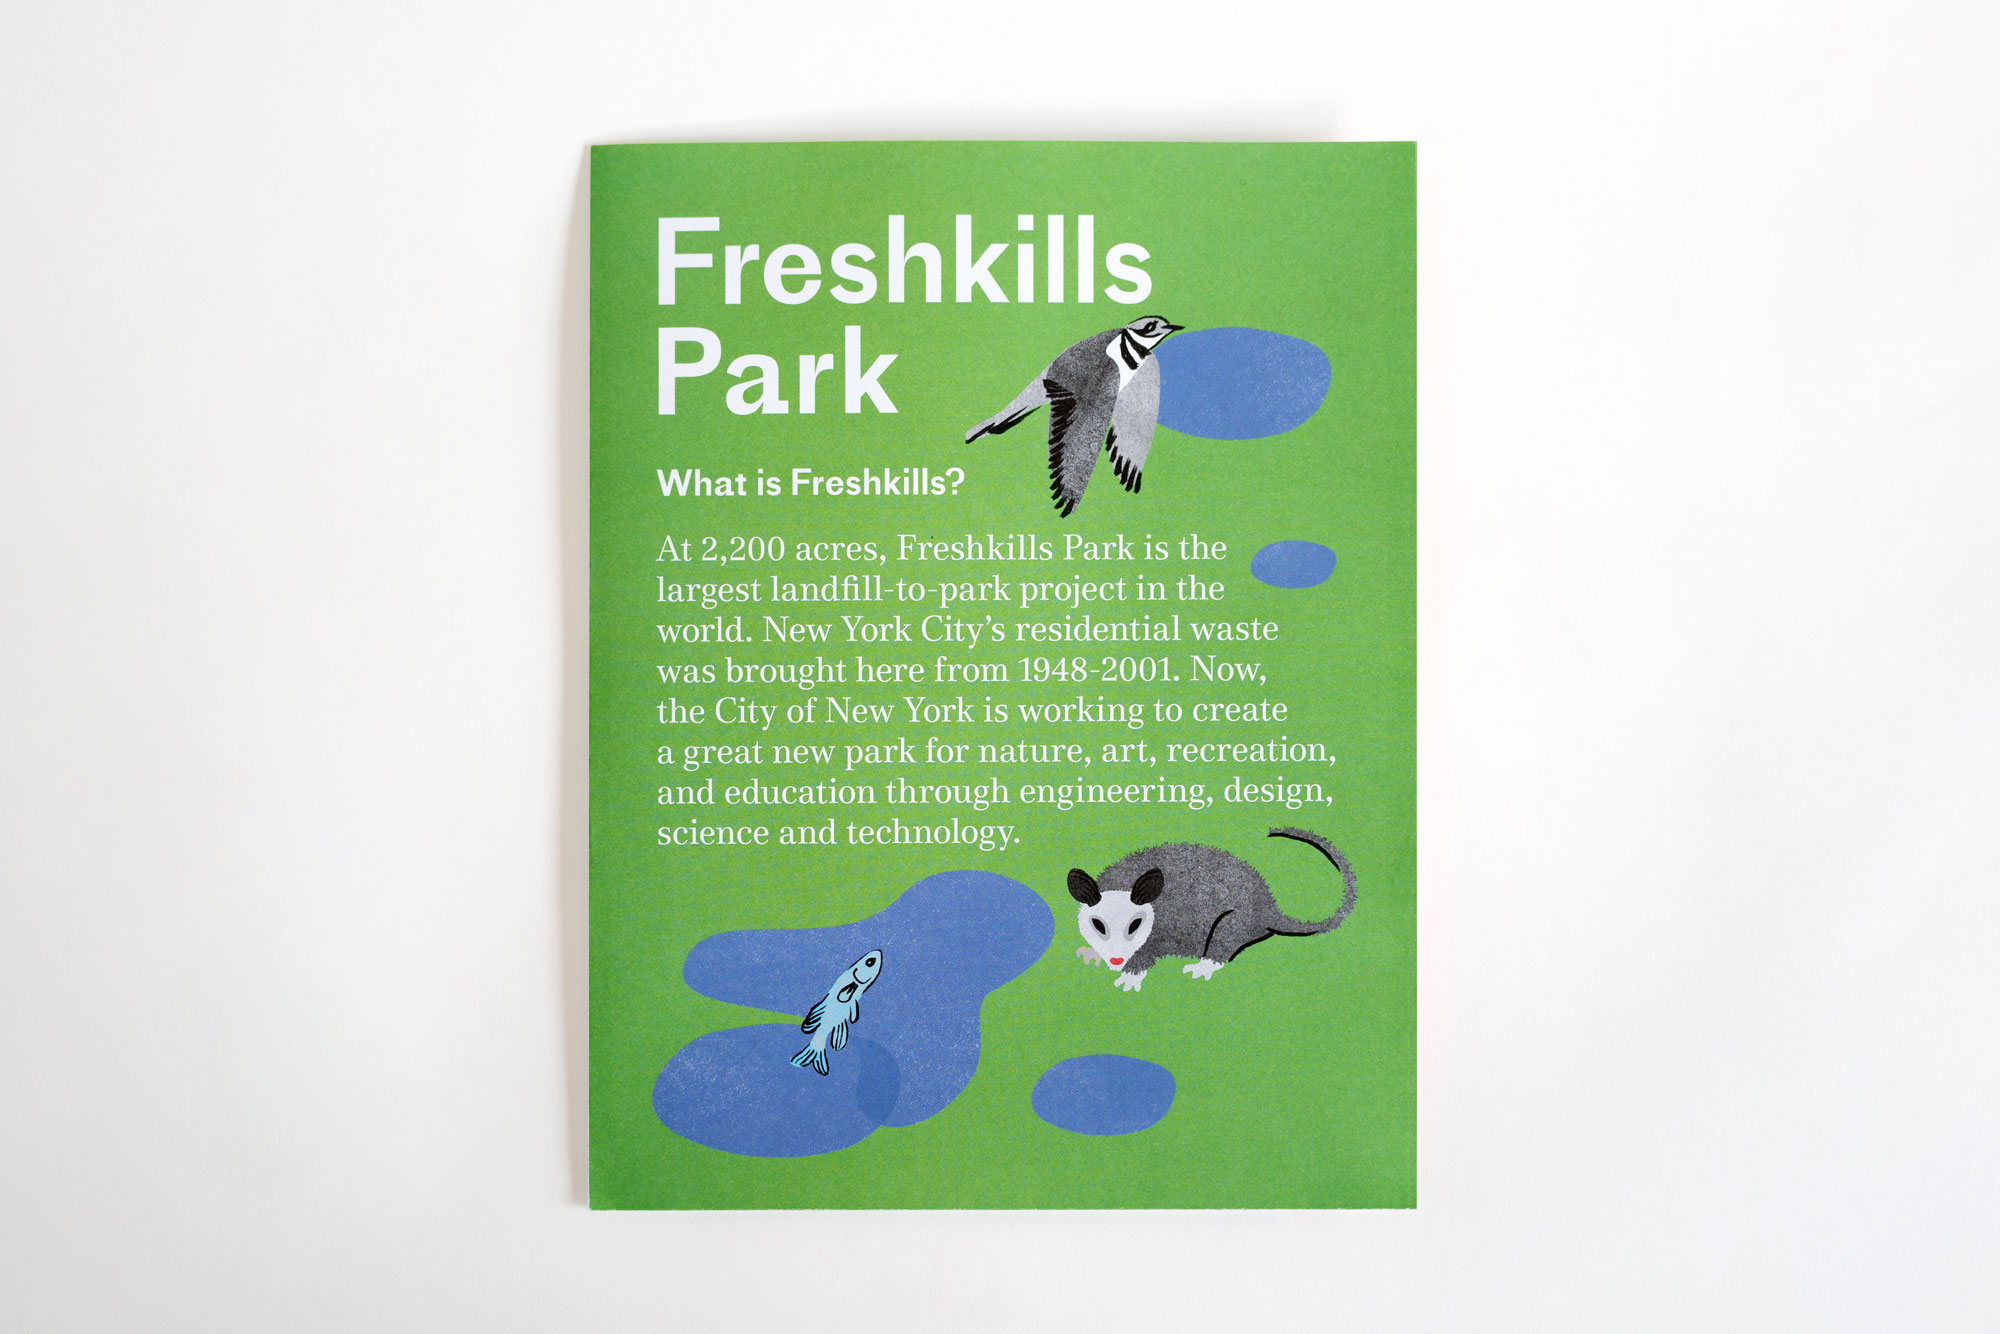 Poster design nature - Freshkills Park Teamed Up With The Design Studio Partner Partners To Create What Is Freshkills A Fold Out Poster Pamphlet That Illustrates The History